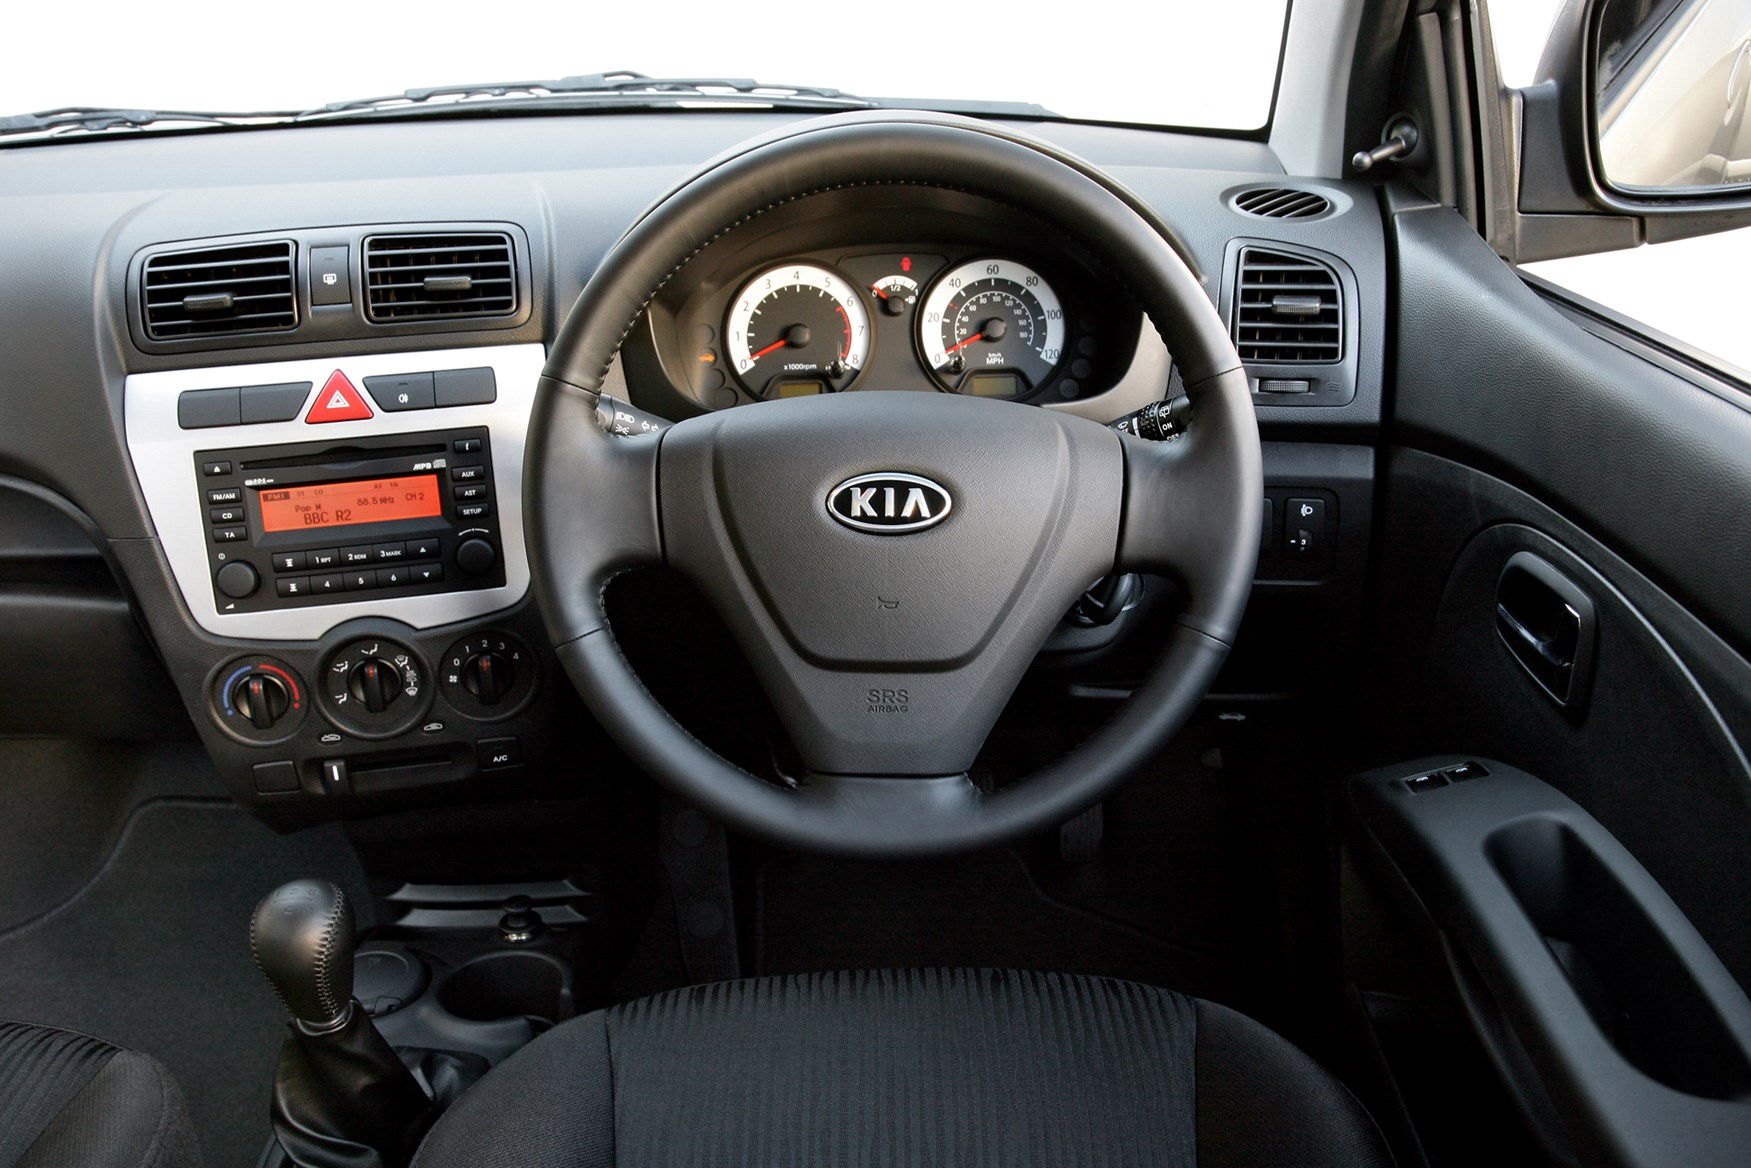 Kia Picanto Hatchback (2004 - 2011) Features, Equipment and ...